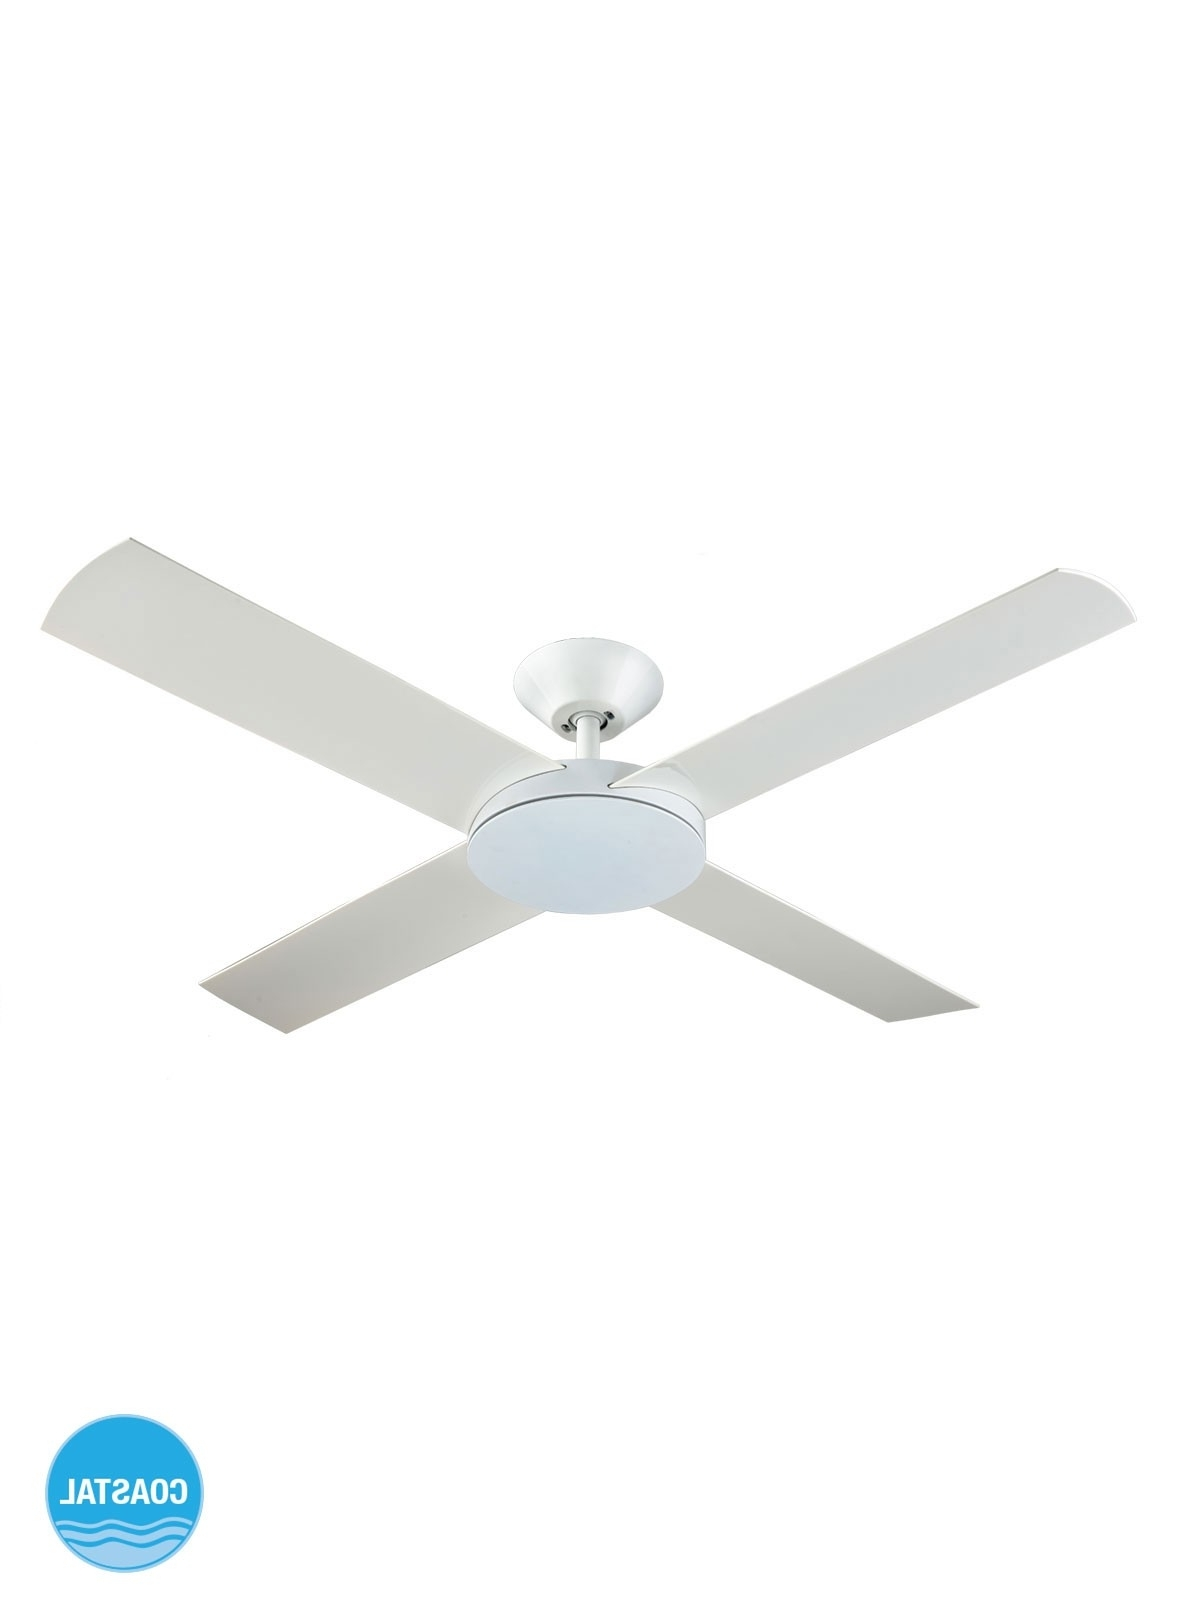 Aero 132Cm Fan Only In White With Regard To Well Liked Outdoor Ceiling Fan With Light Under $ (View 1 of 20)